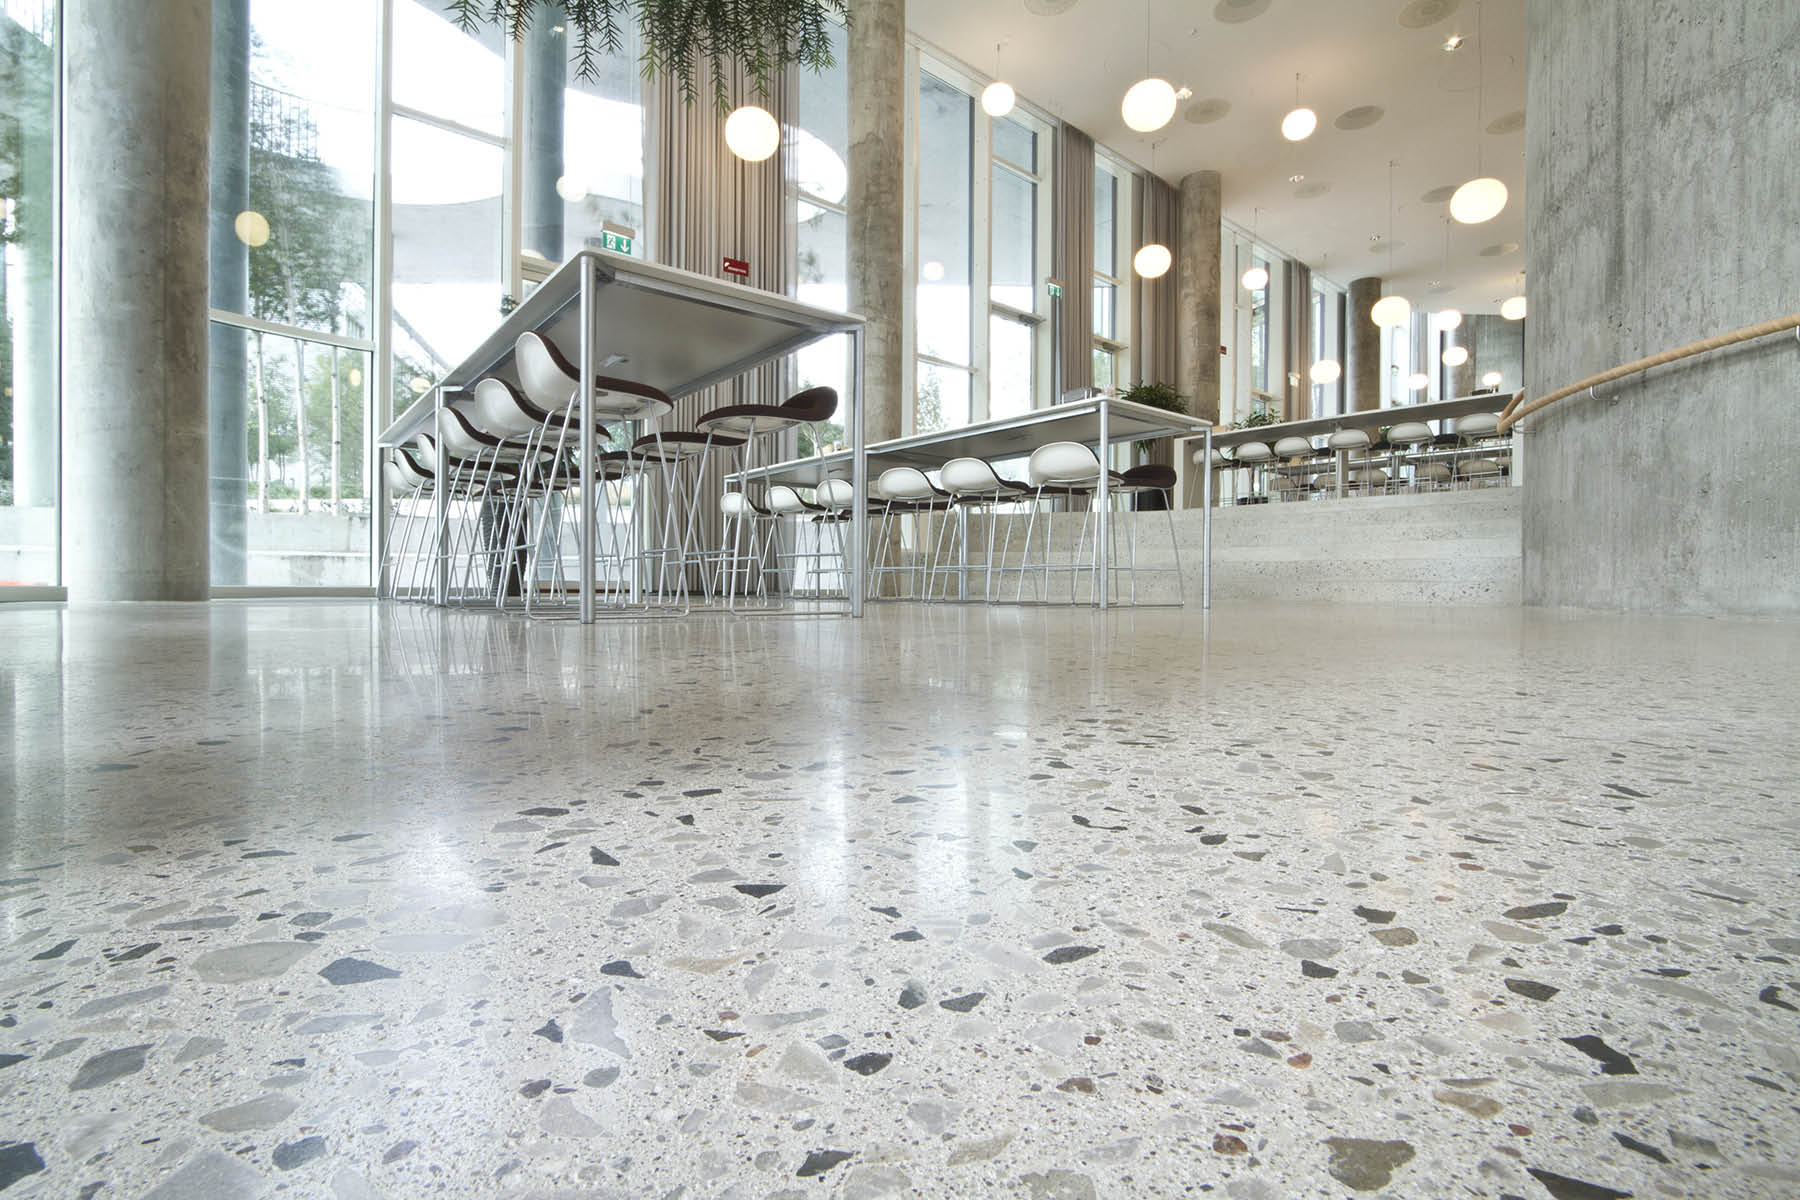 How To Clean A Polished Concrete Floor Epoxy Flooring Los Angeles